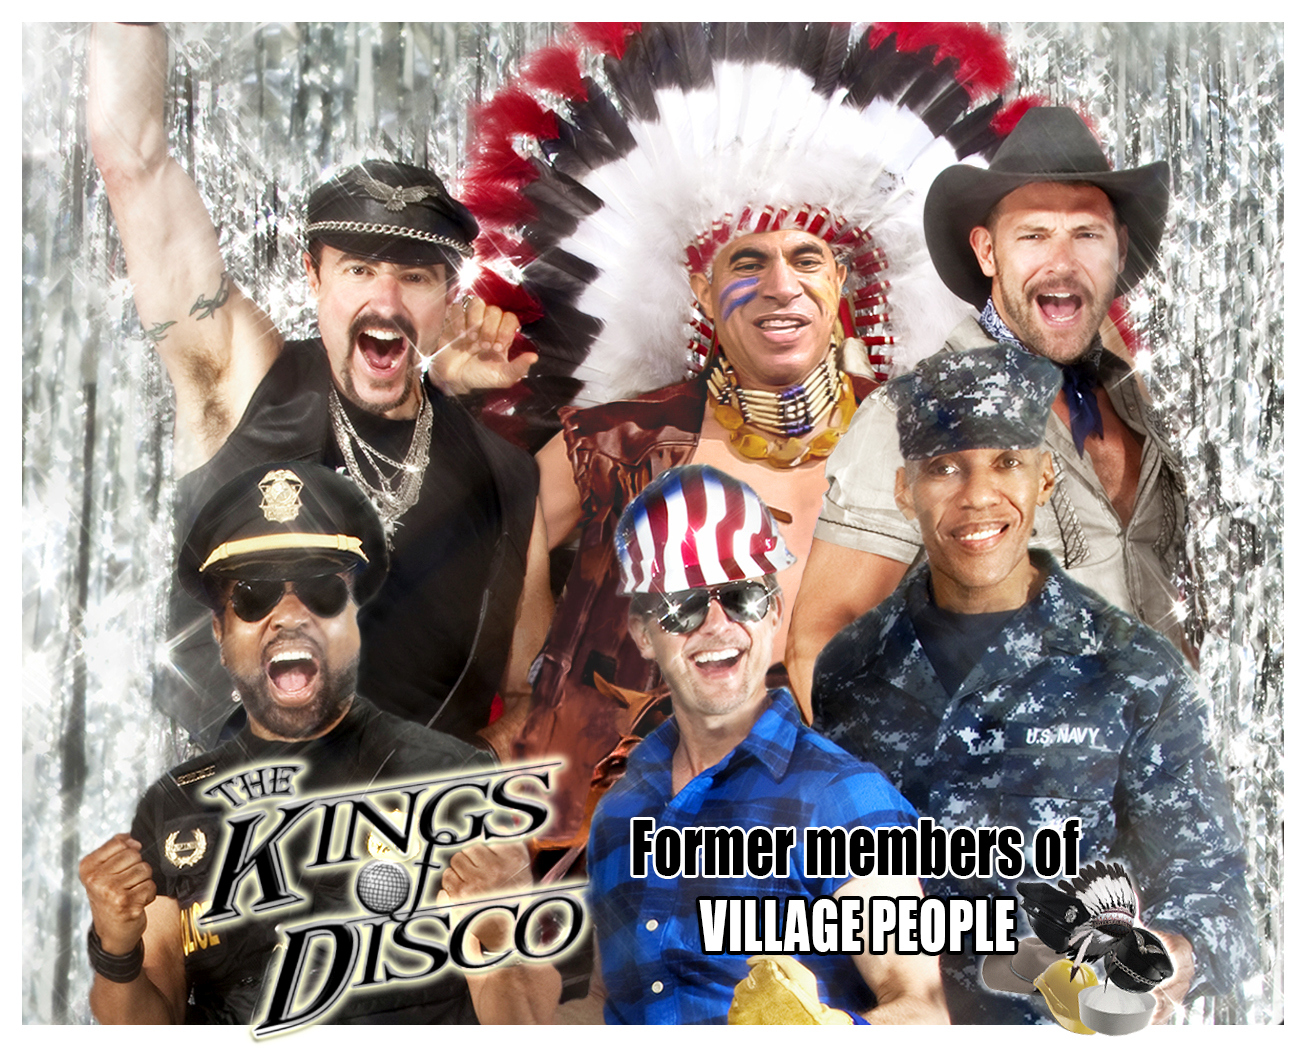 THE KINGS OF DISCO